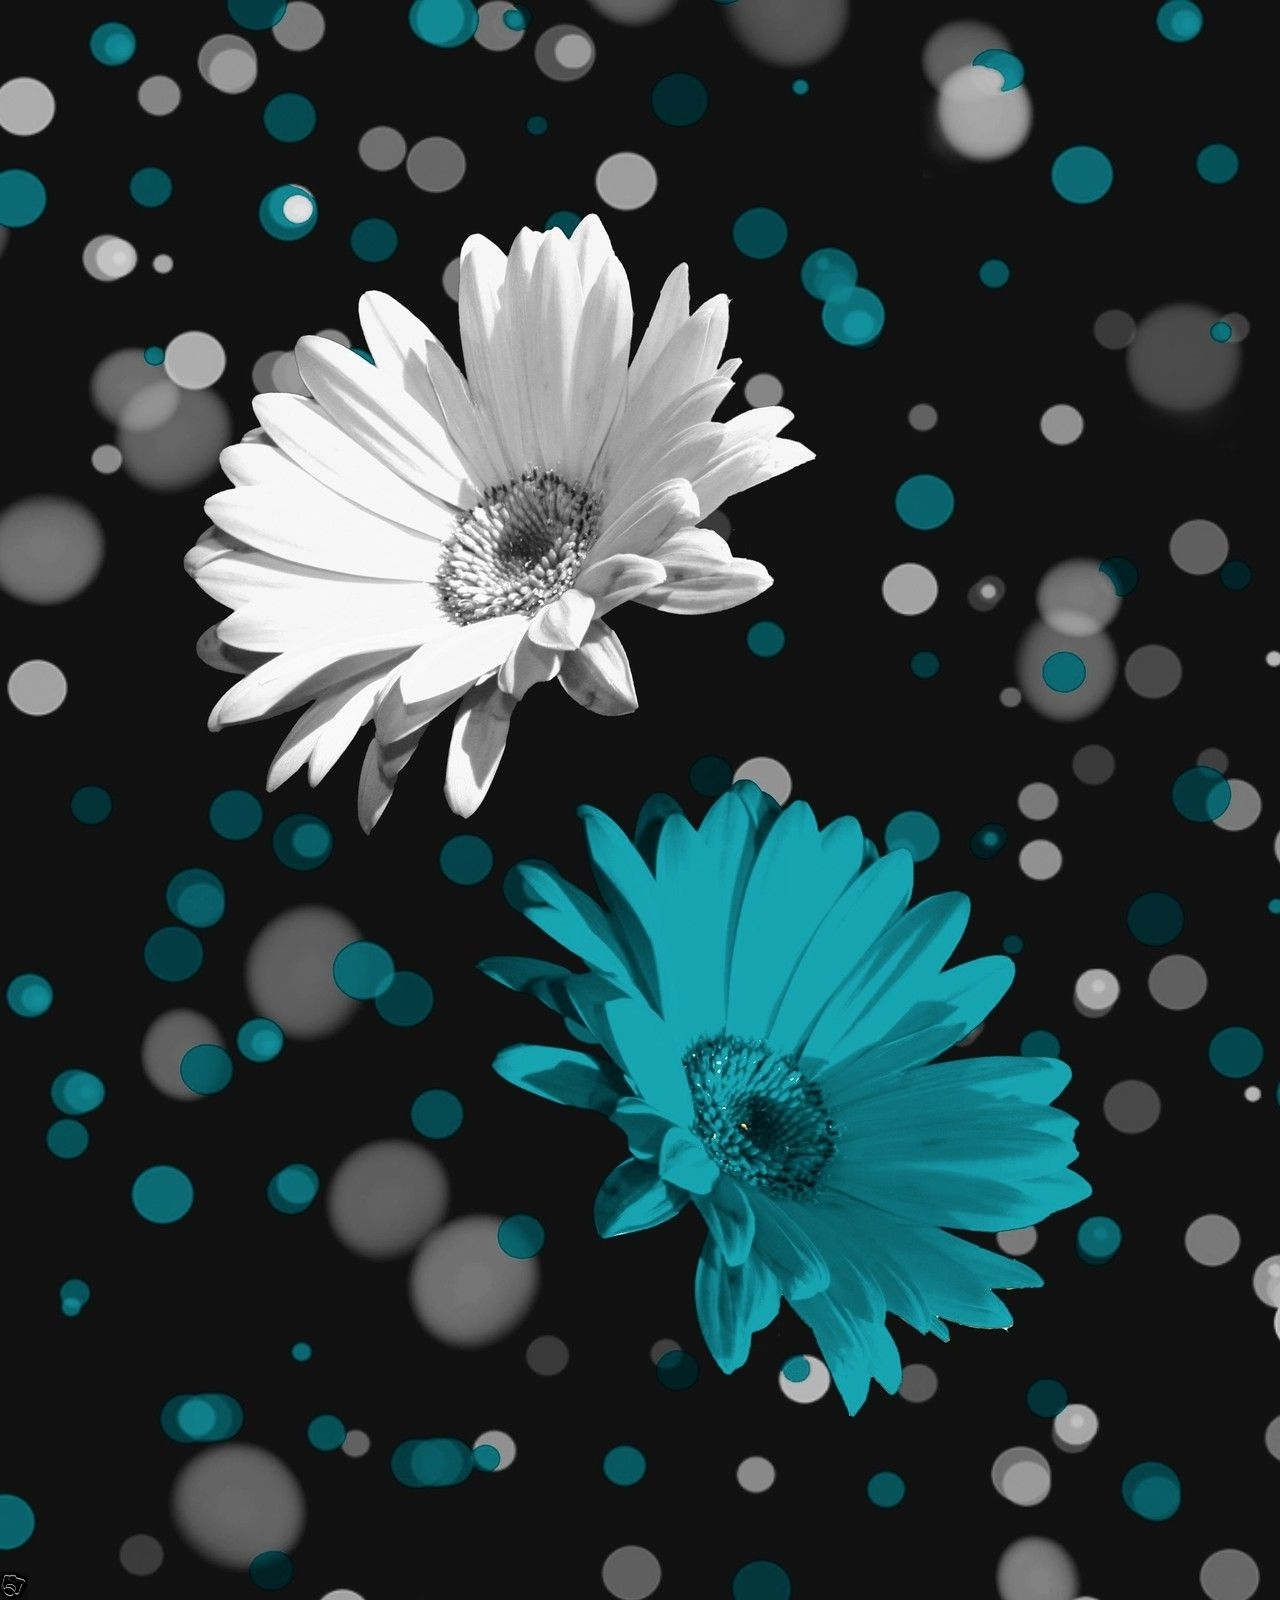 Recent Black And Teal Wall Art Intended For Black White Teal Daisy Flowers Wall Art Home Decor Matted Picture (View 12 of 15)